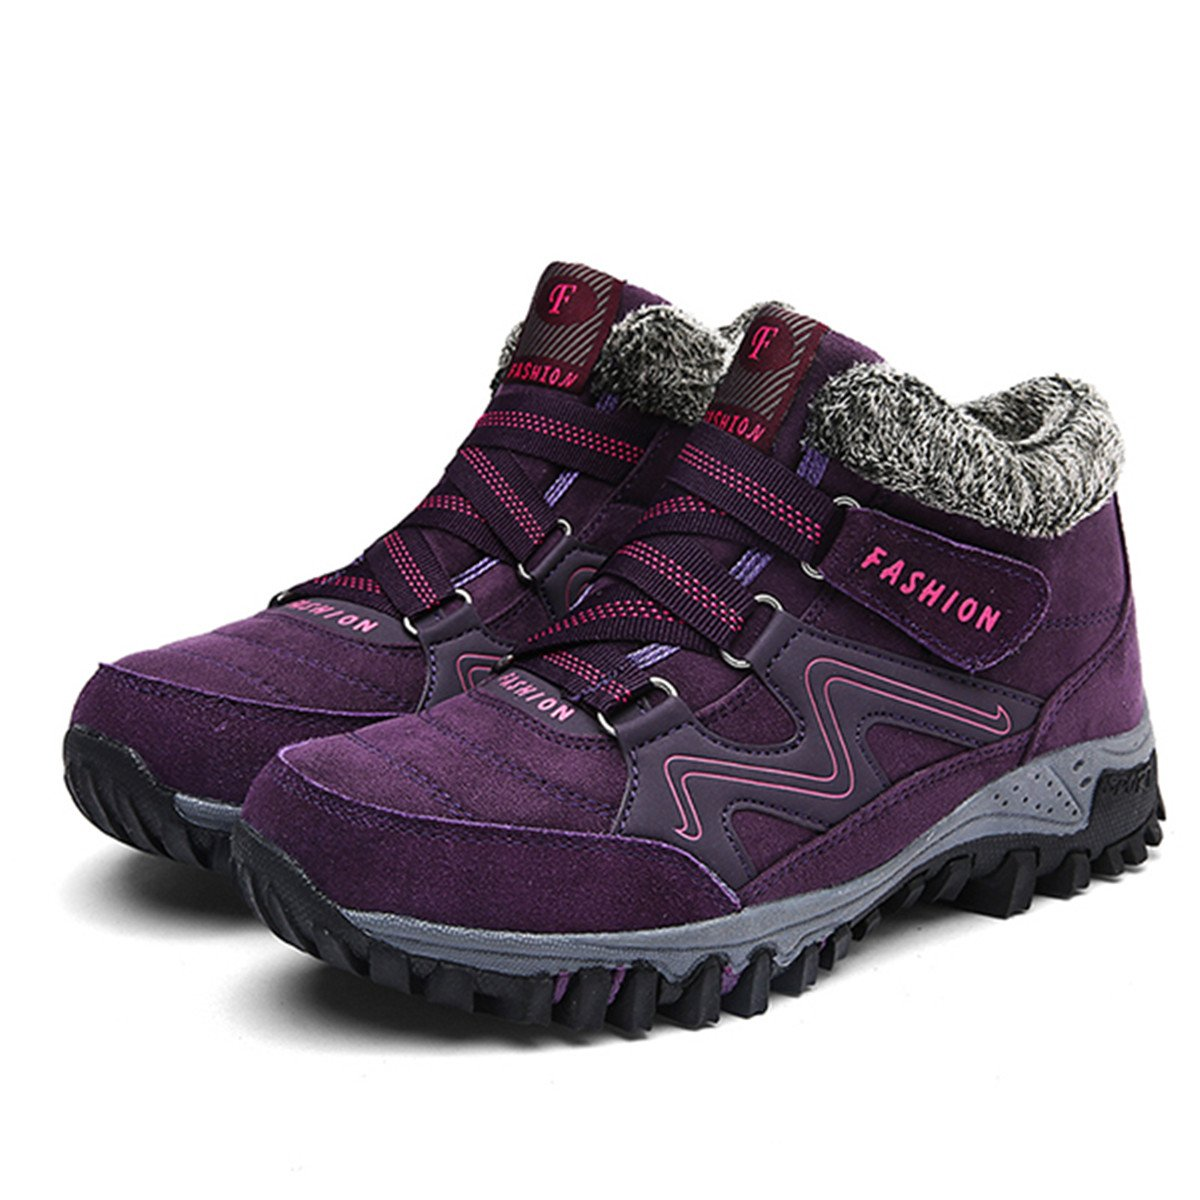 Gracosy High Top Sneaker, Women Winter Warm Hook Loop Snow Shoes Fur Lining Casual Boots Ankle Bootie B077CKHBSX 10 B(M) US|Purple